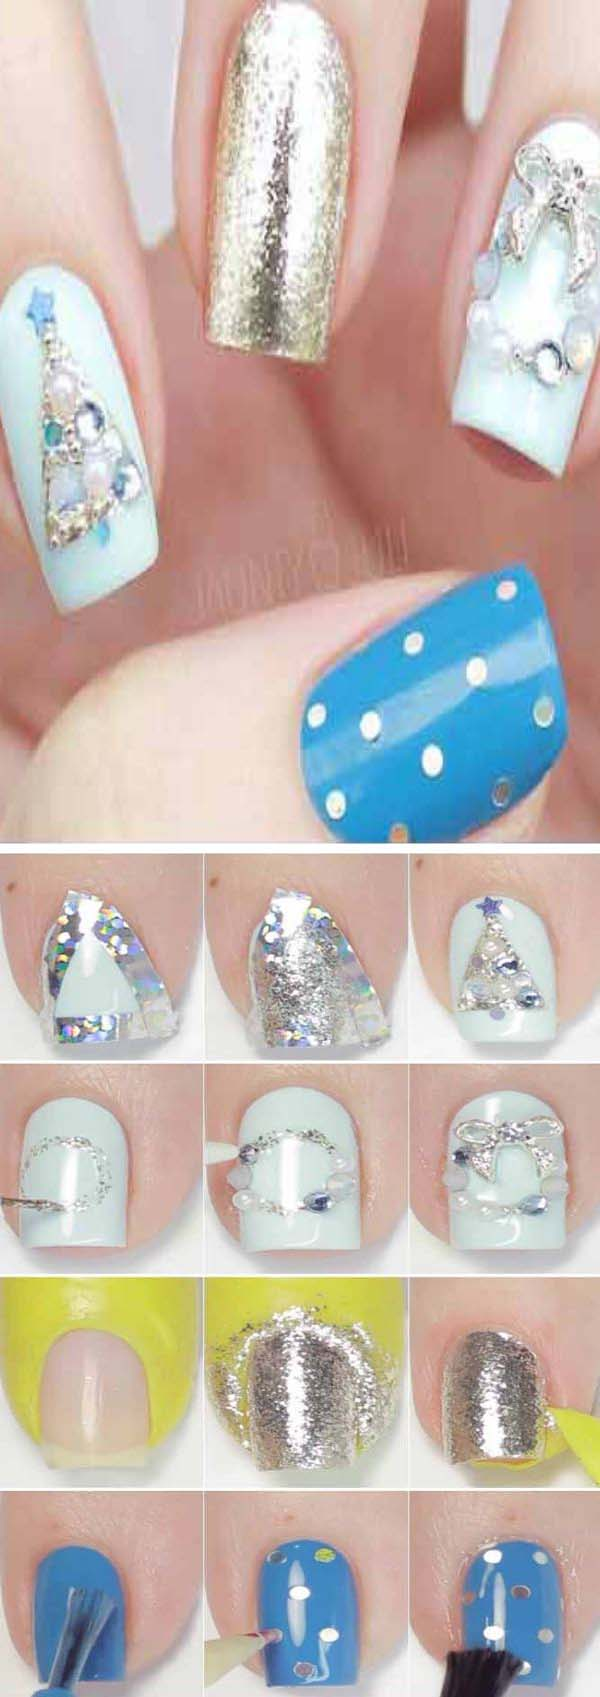 Icy Crystal Christmas Nails #Christmas #nails #tutorials #trendypins